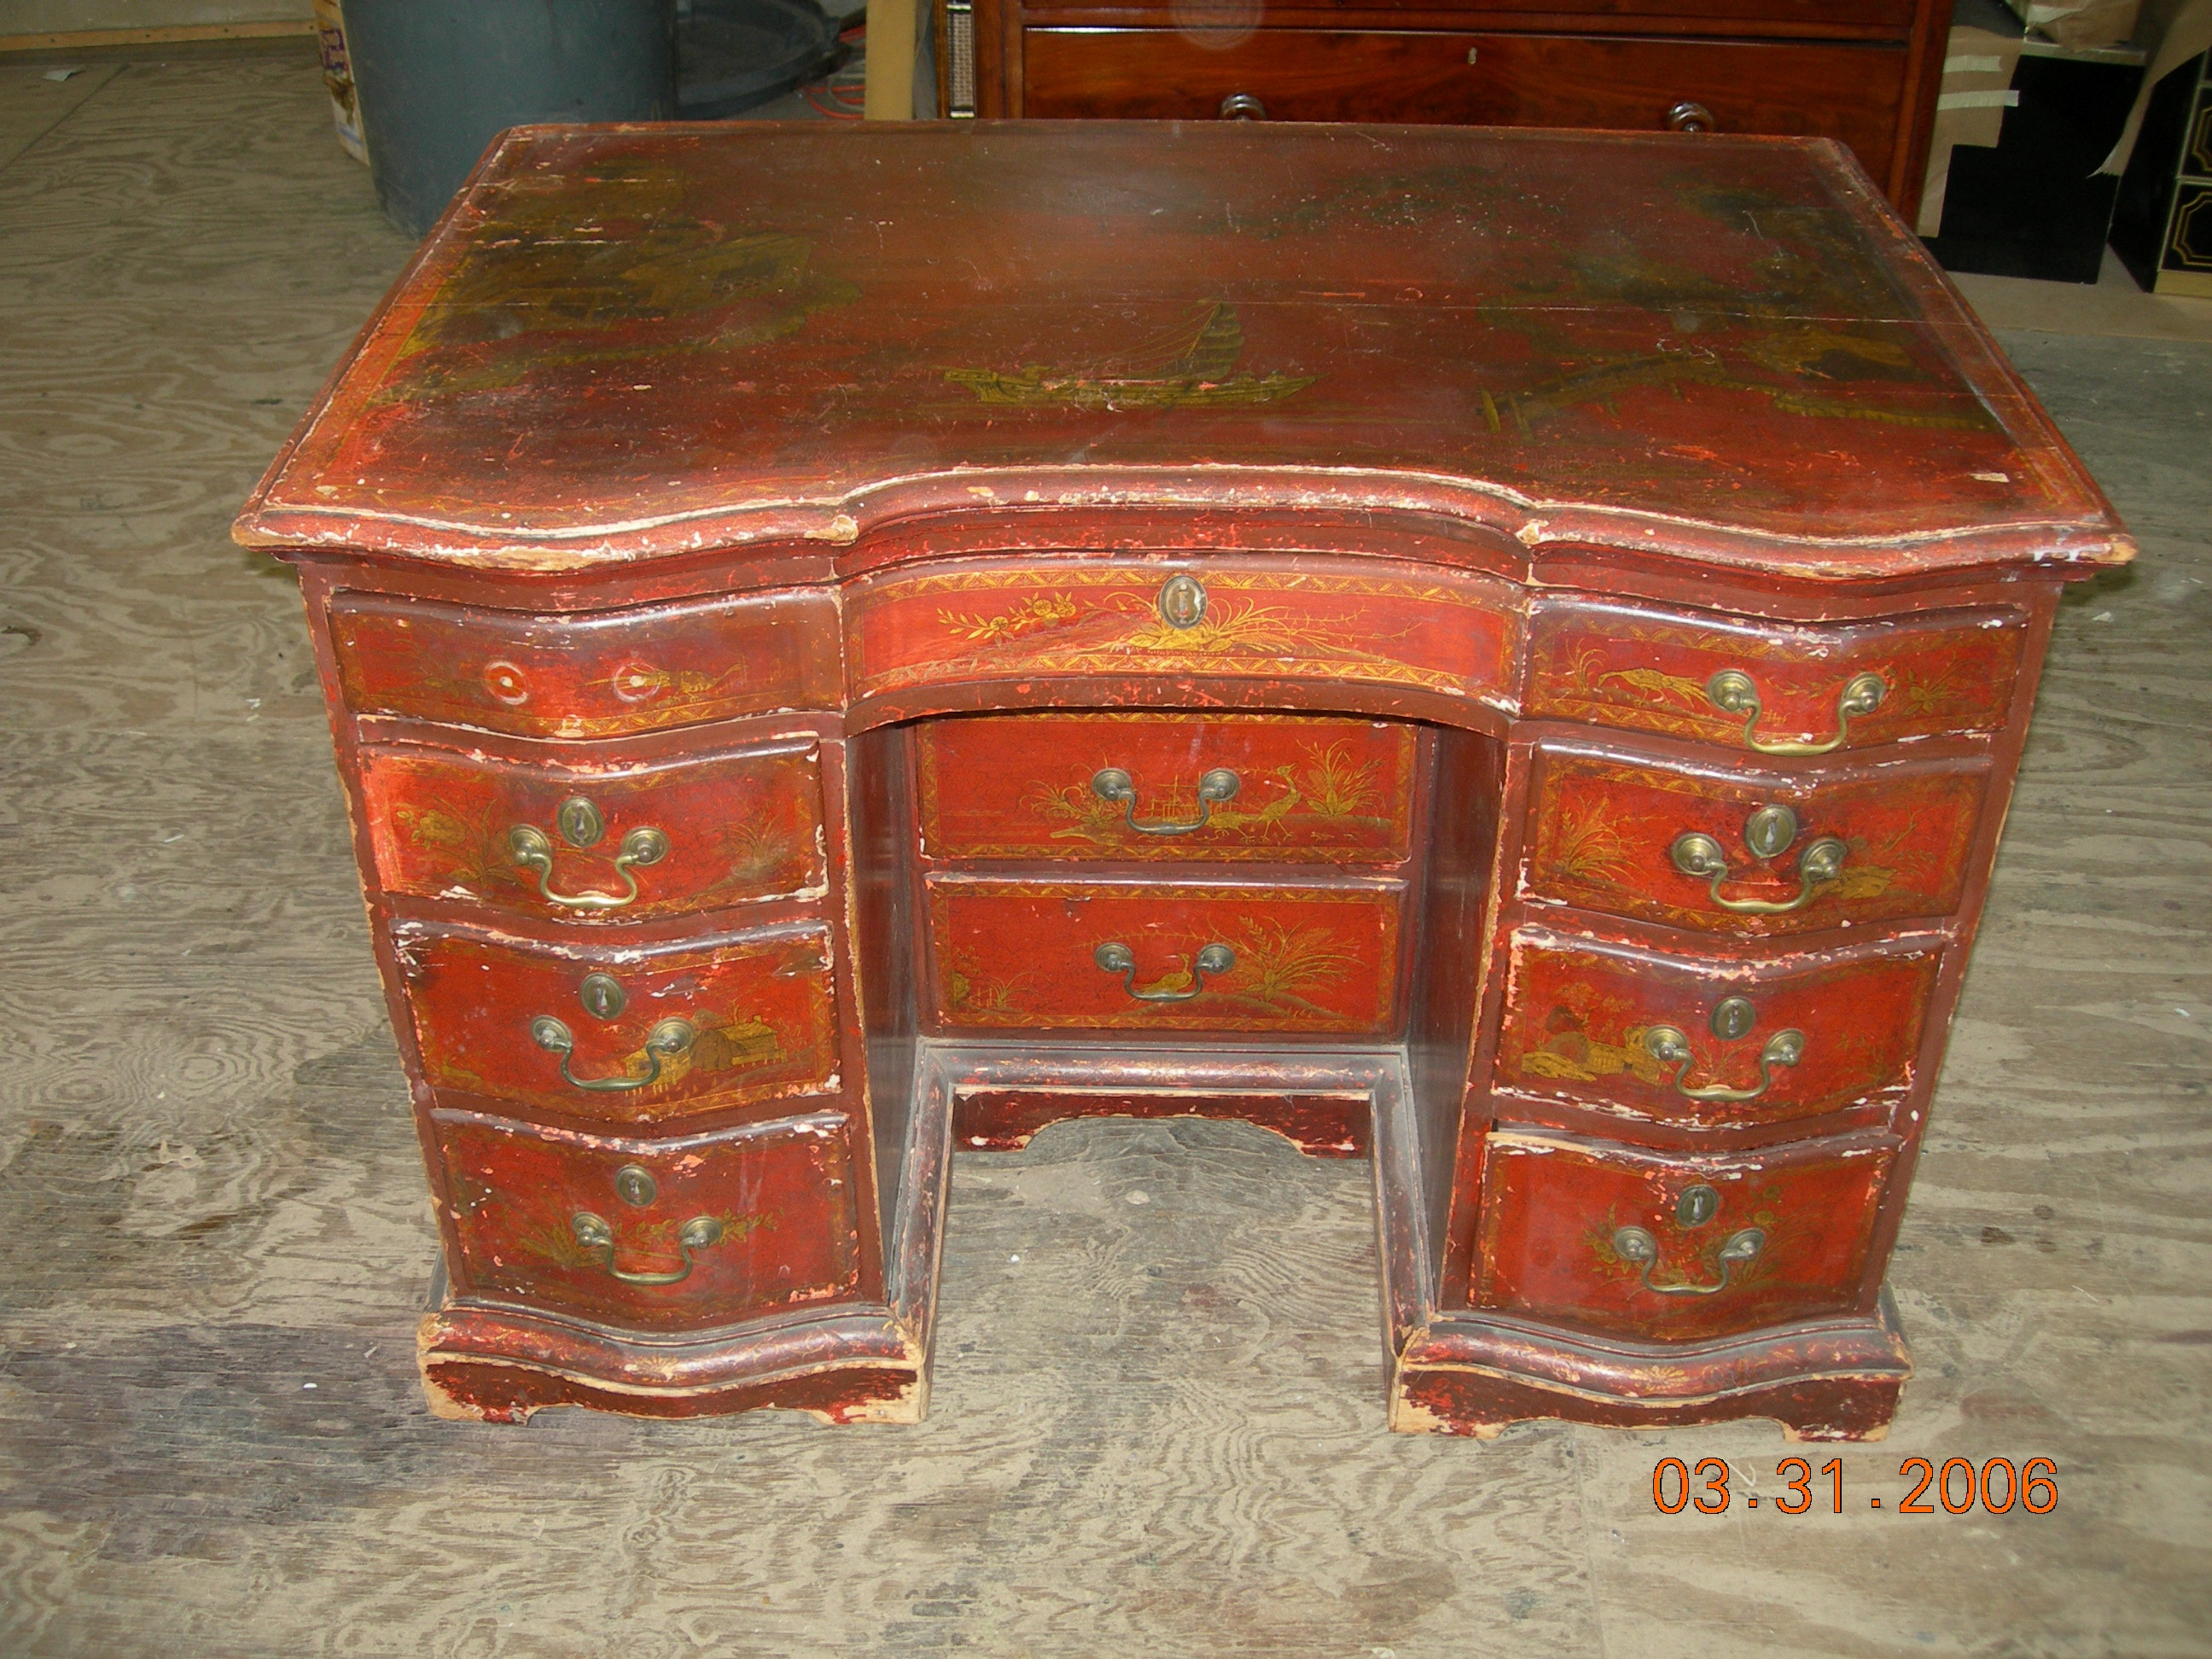 antique furniture conservation repair gilding lacquer